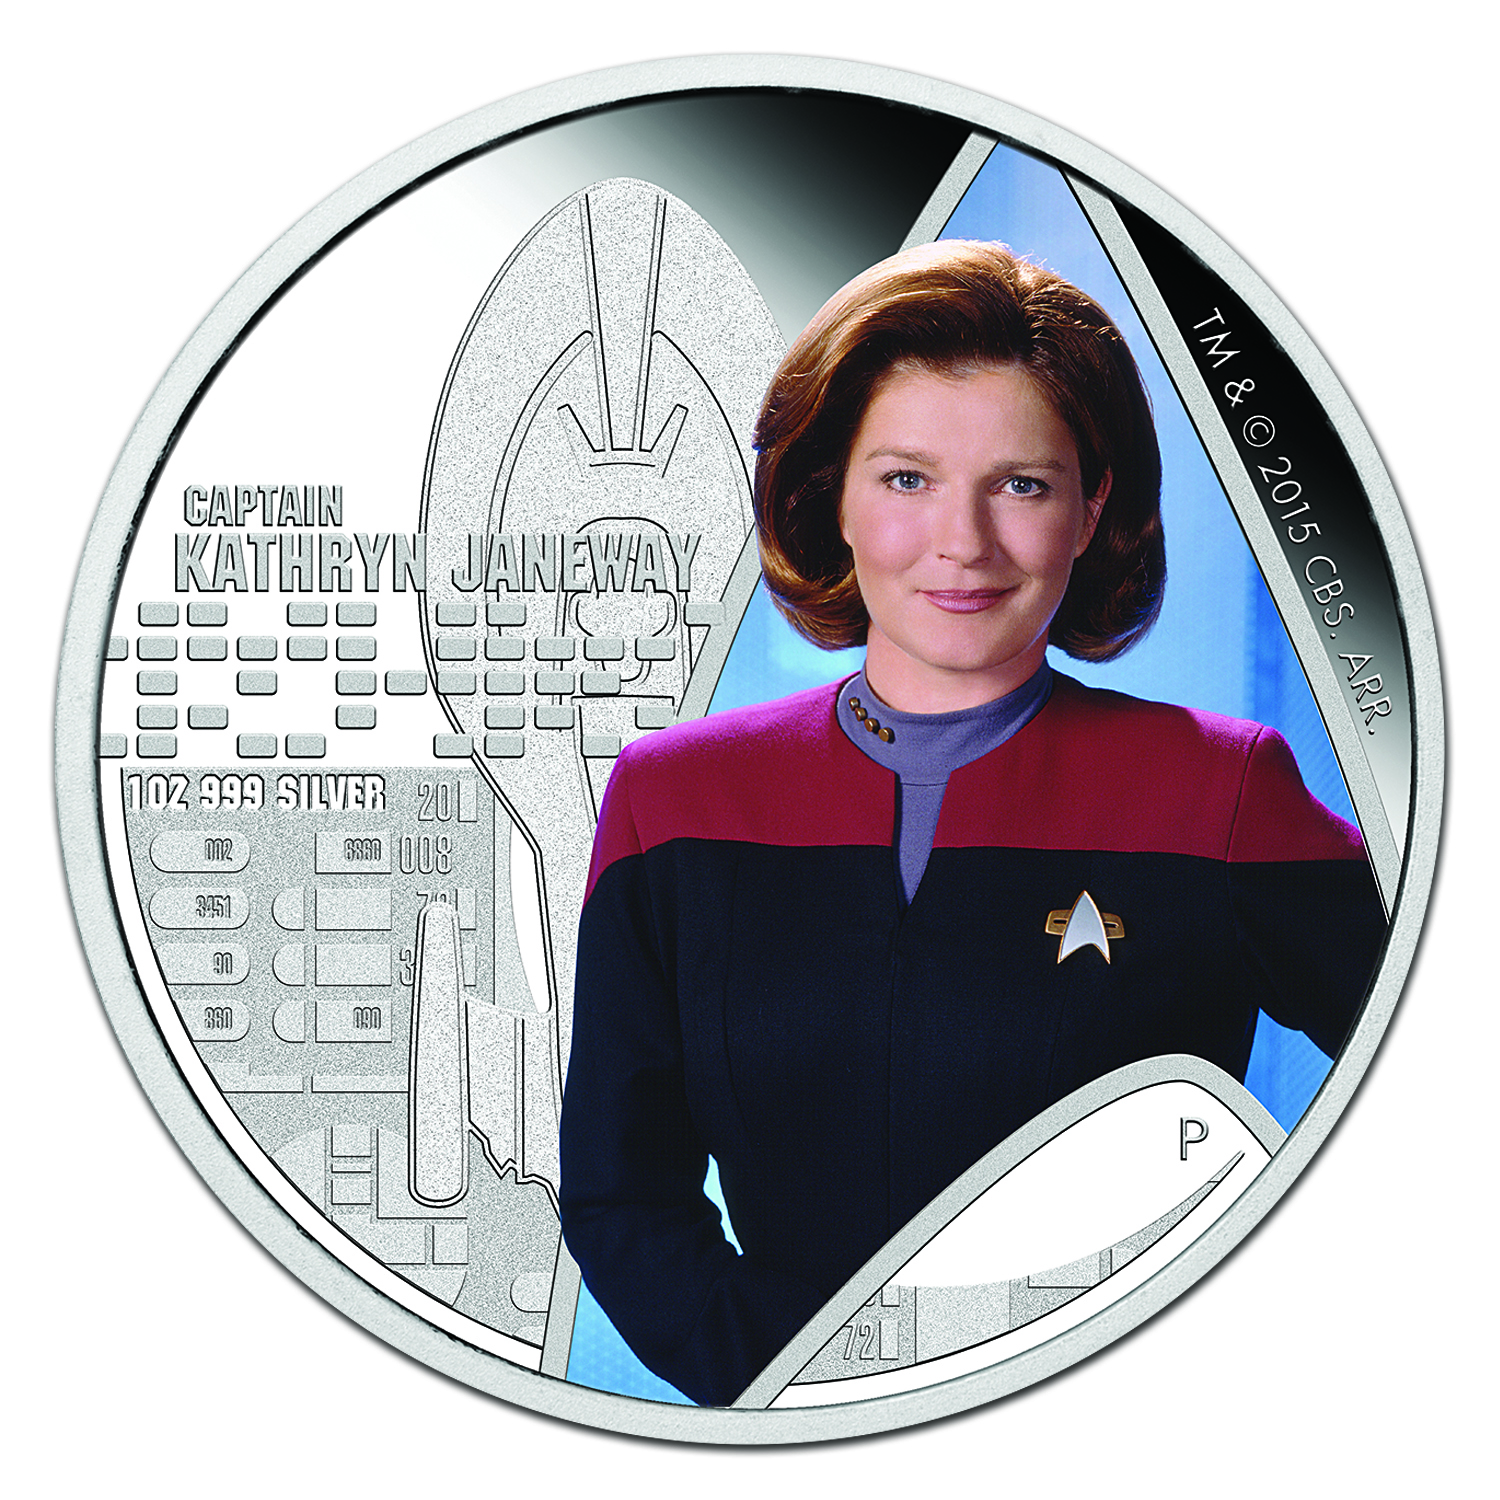 2015 Tuvalu 1 oz Silver Star Trek Colored Capt. Janeway Proof